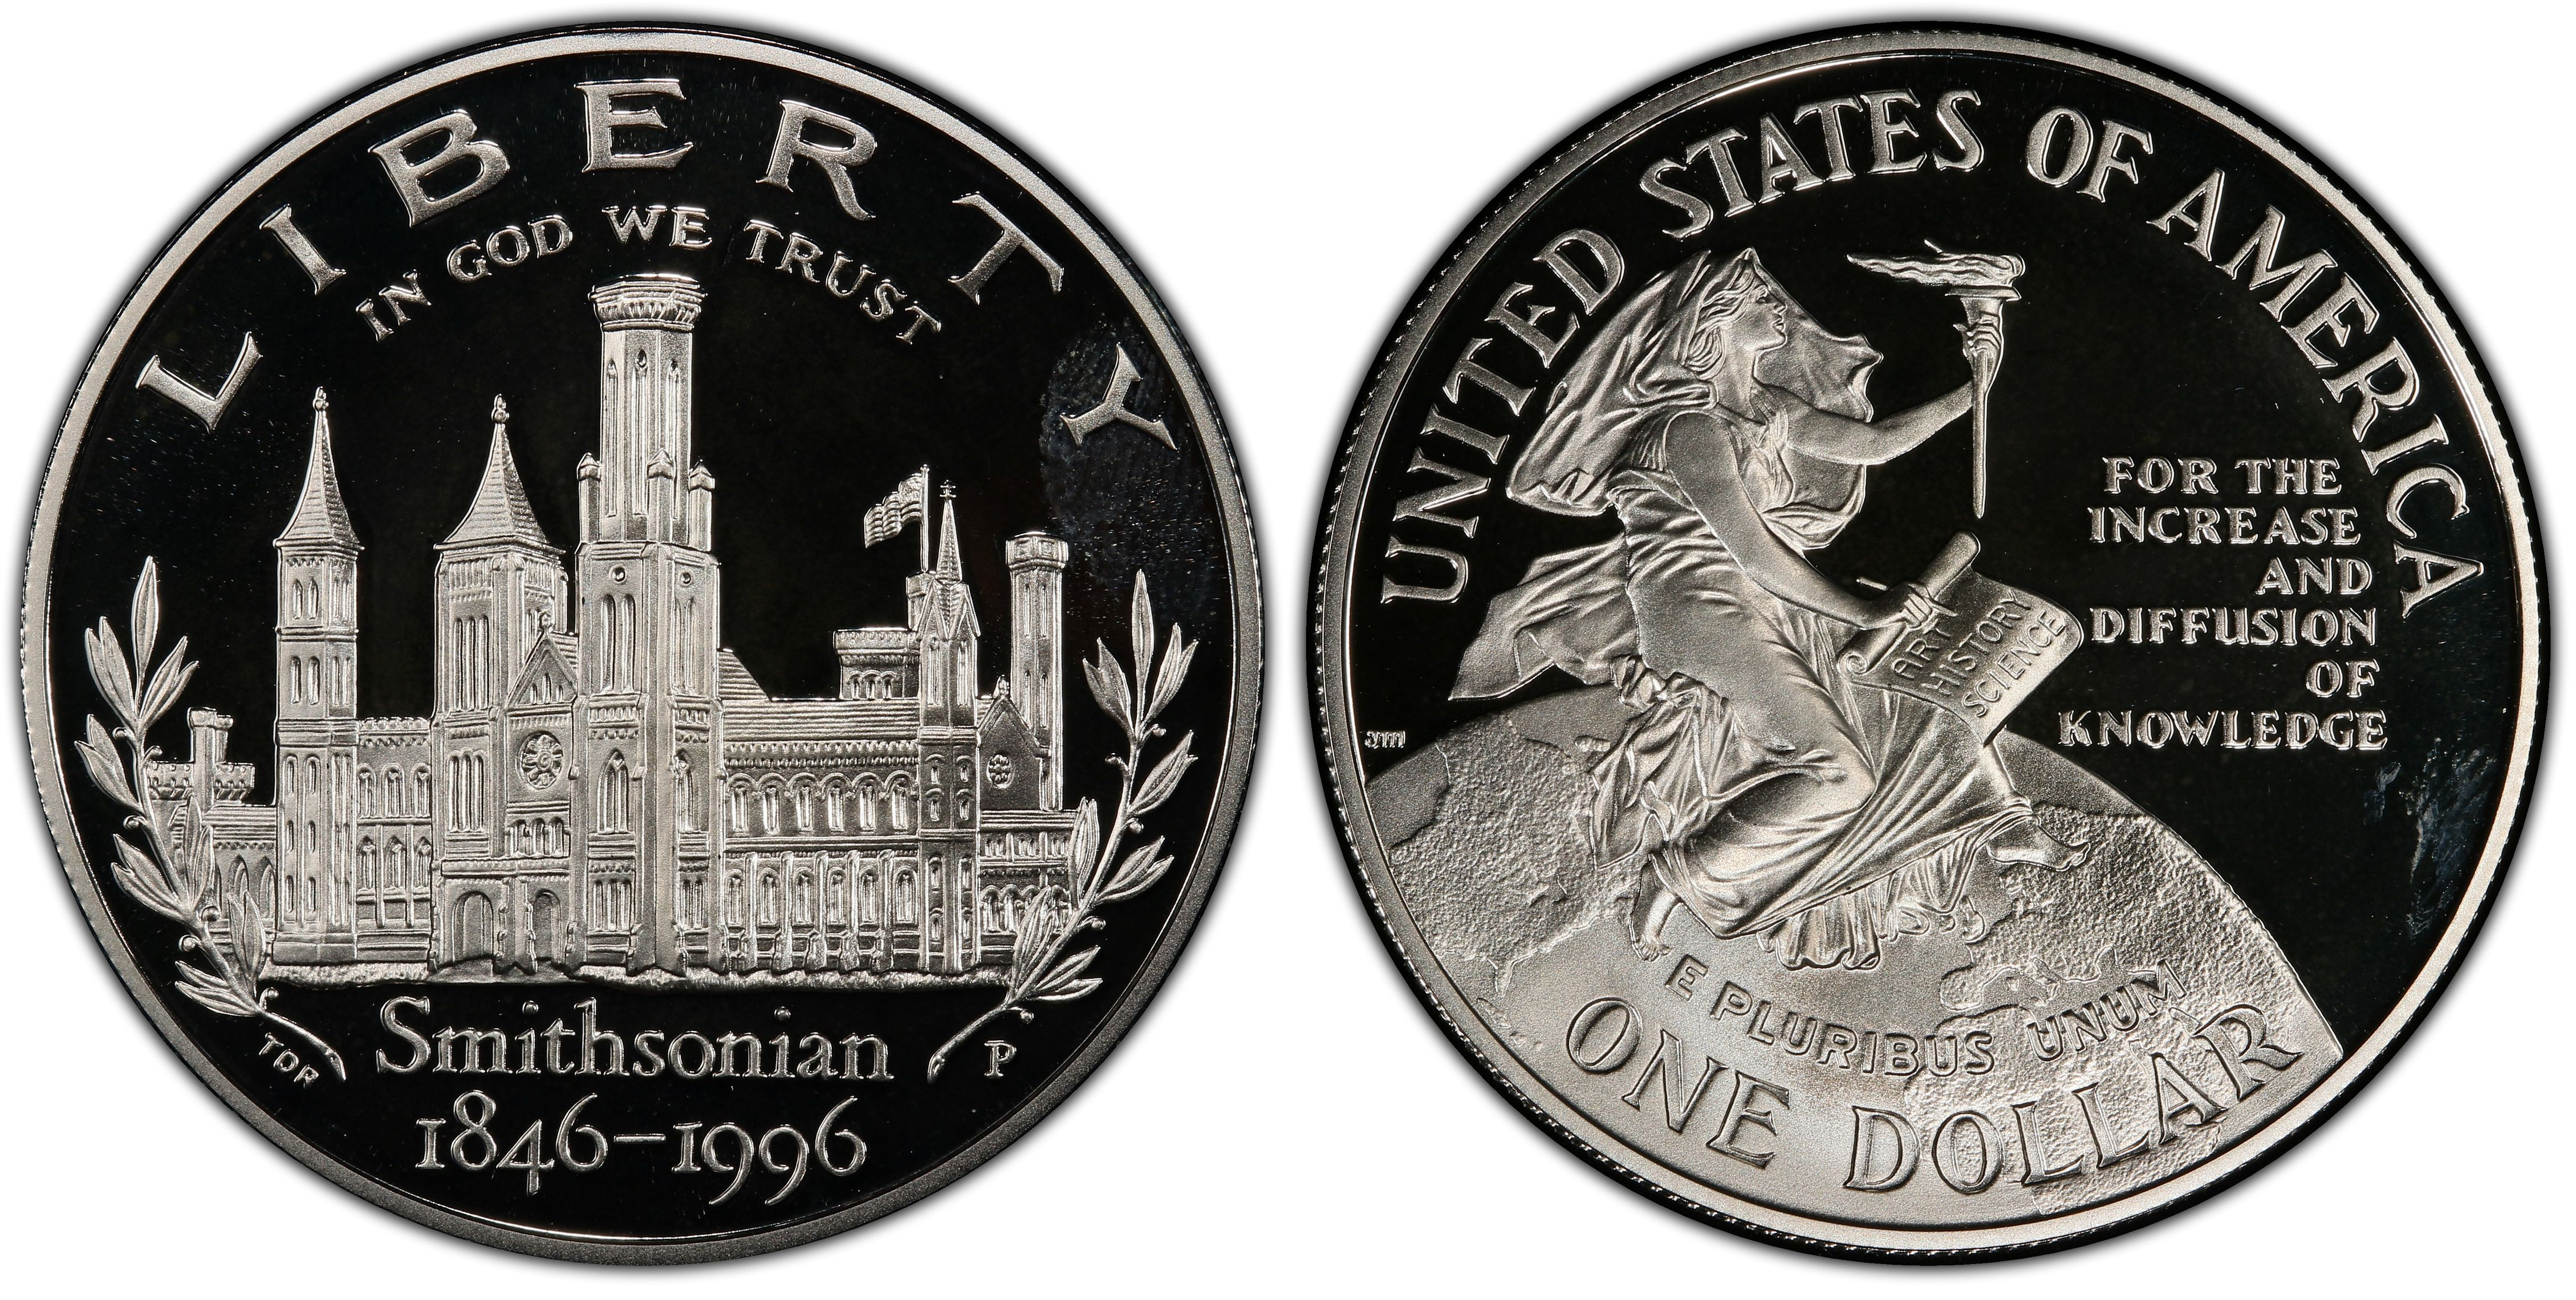 1996-P US Smithsonian 150th Anniversary Proof Silver Dollar Special Edition